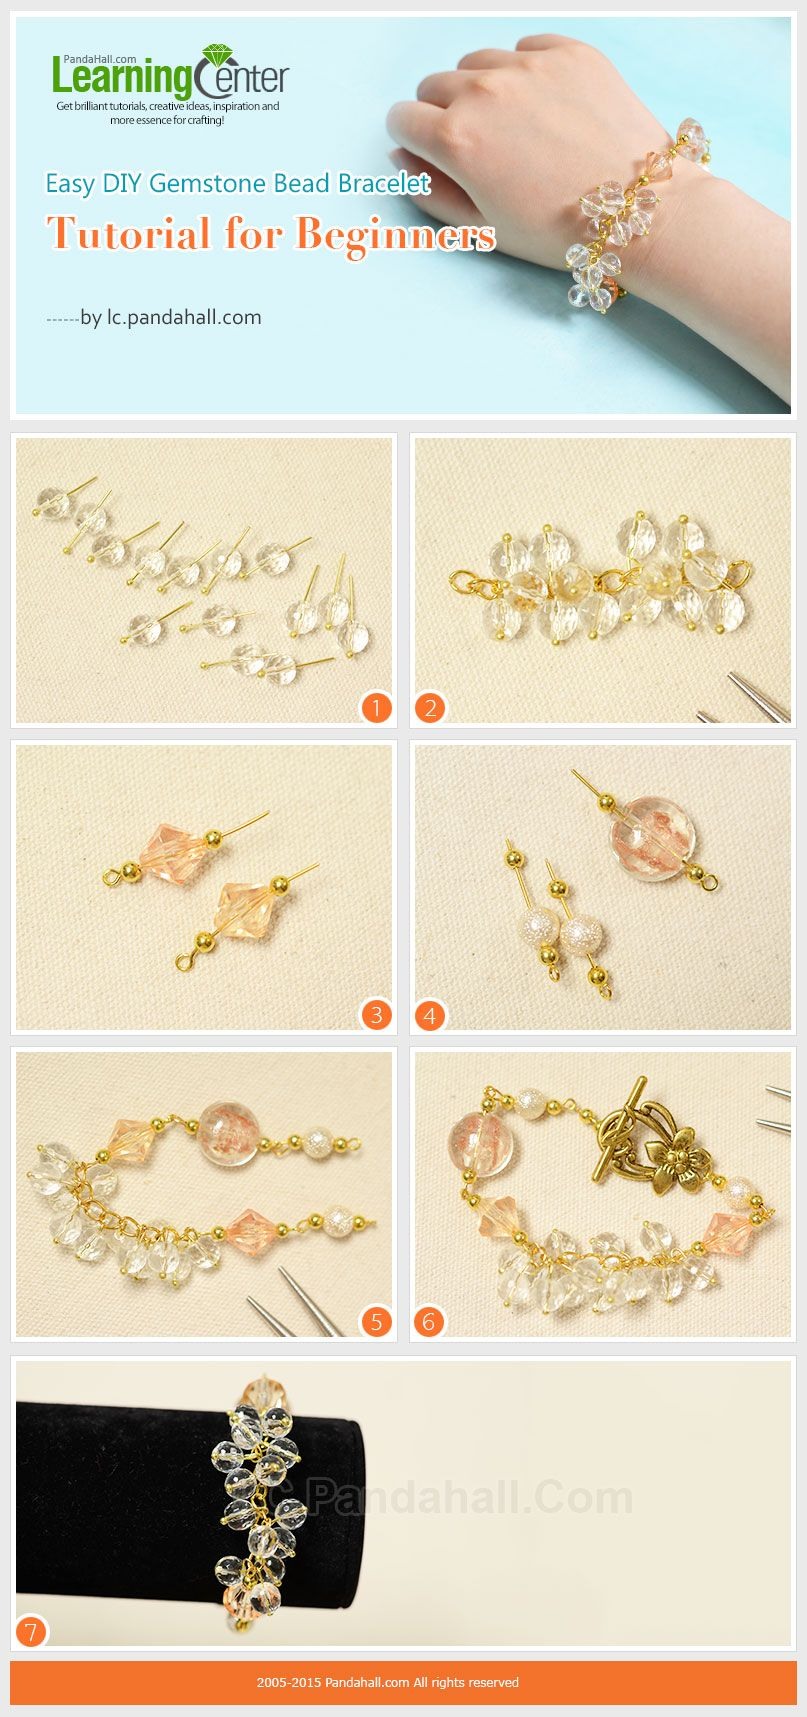 How to Make Easy Crystal Cluster Bracelet This project will share ...